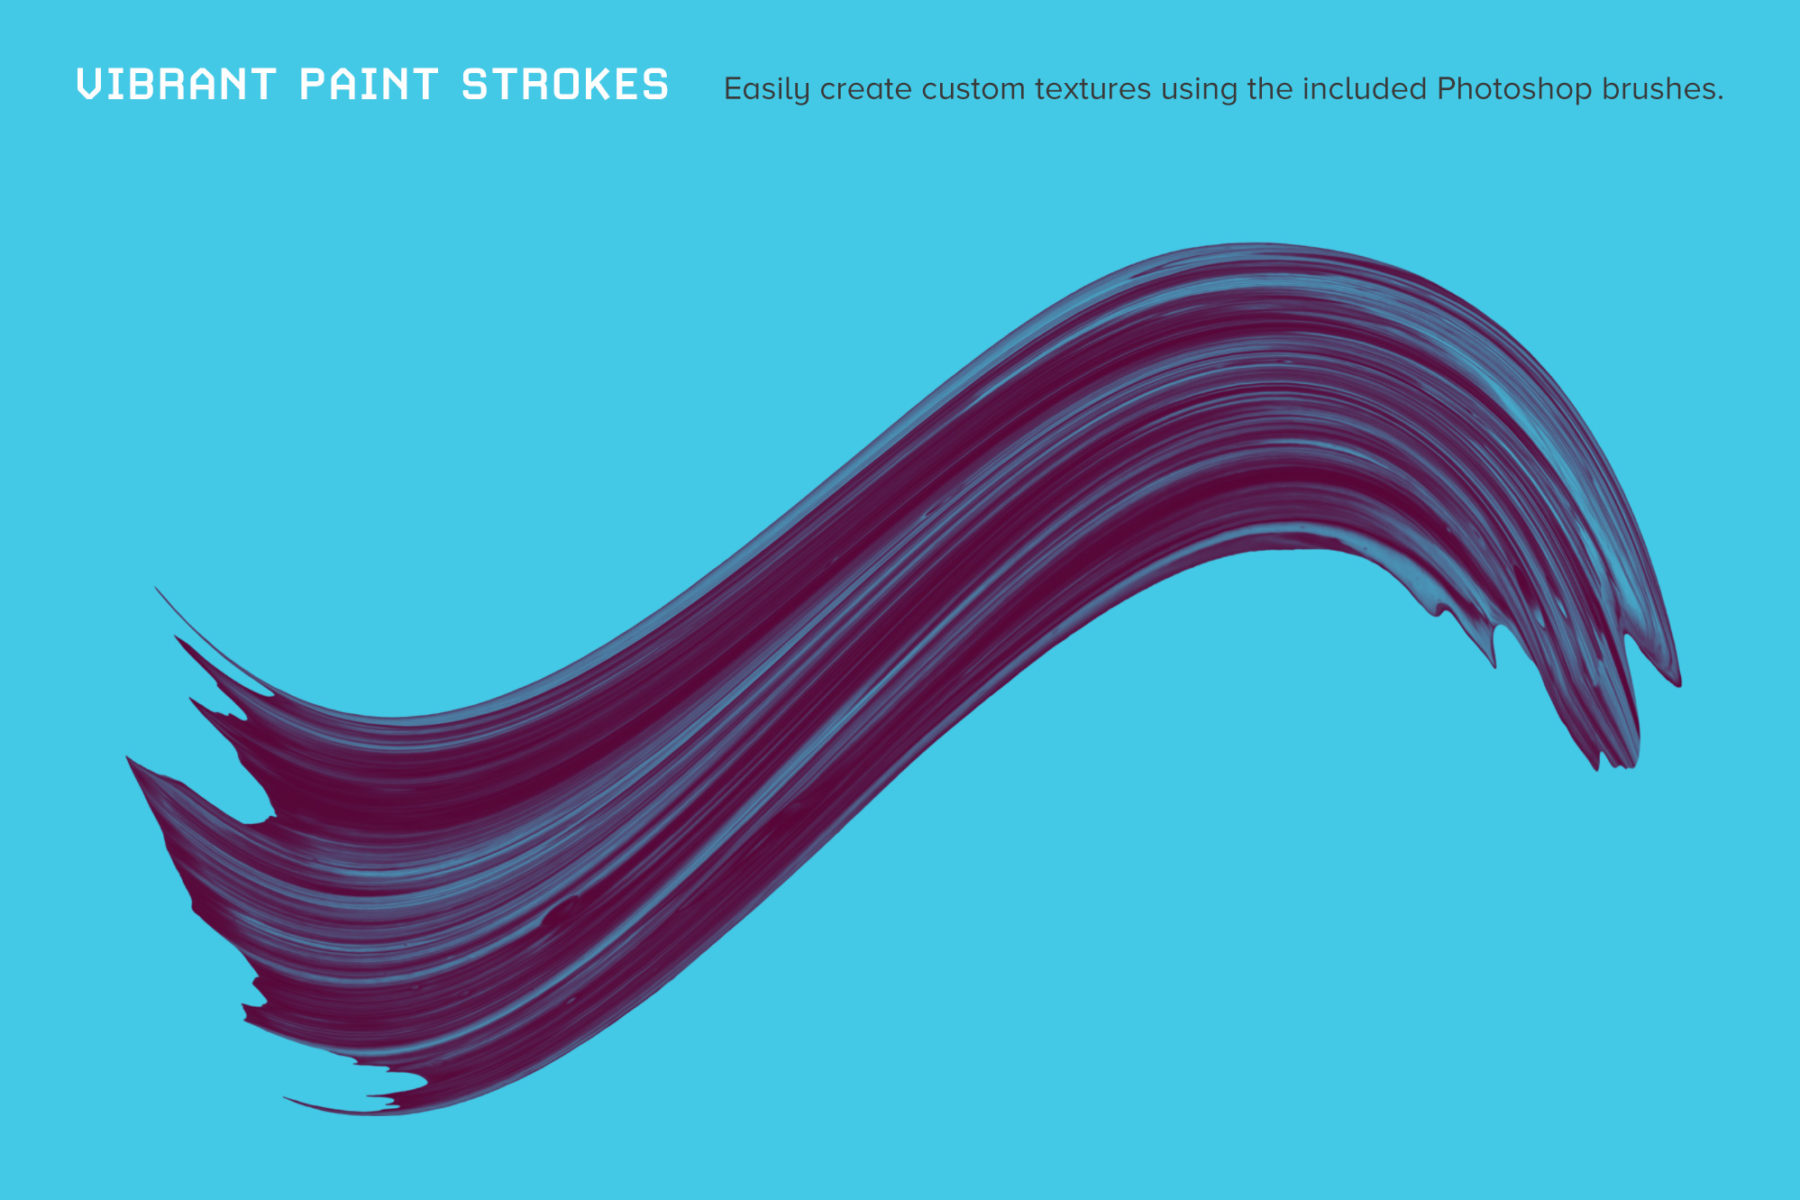 https://nusupply.co/wp-content/uploads/2020/01/12-Vibrant-Paint-Strokes_preview_Brushes-1800x1200.jpg